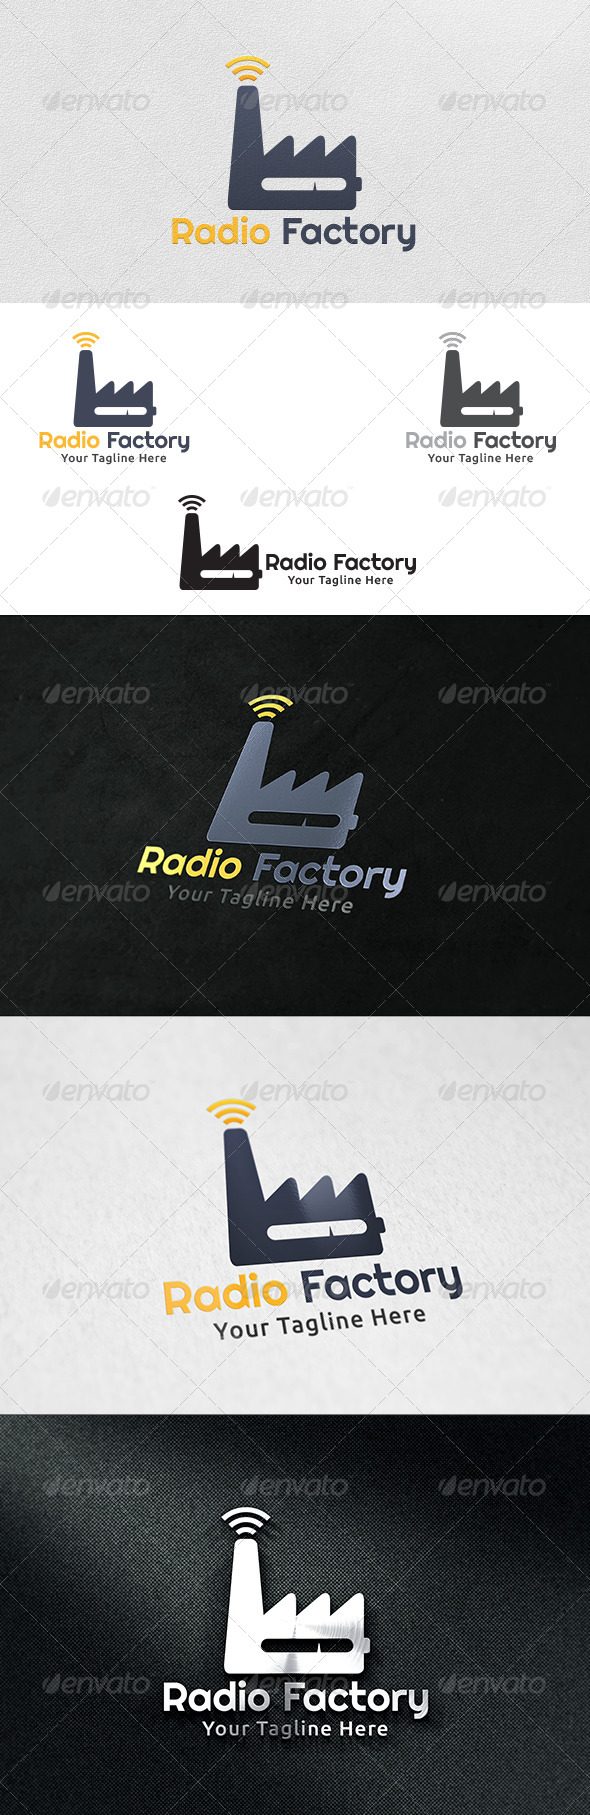 Radio Factory - Logo Template - Buildings Logo Templates